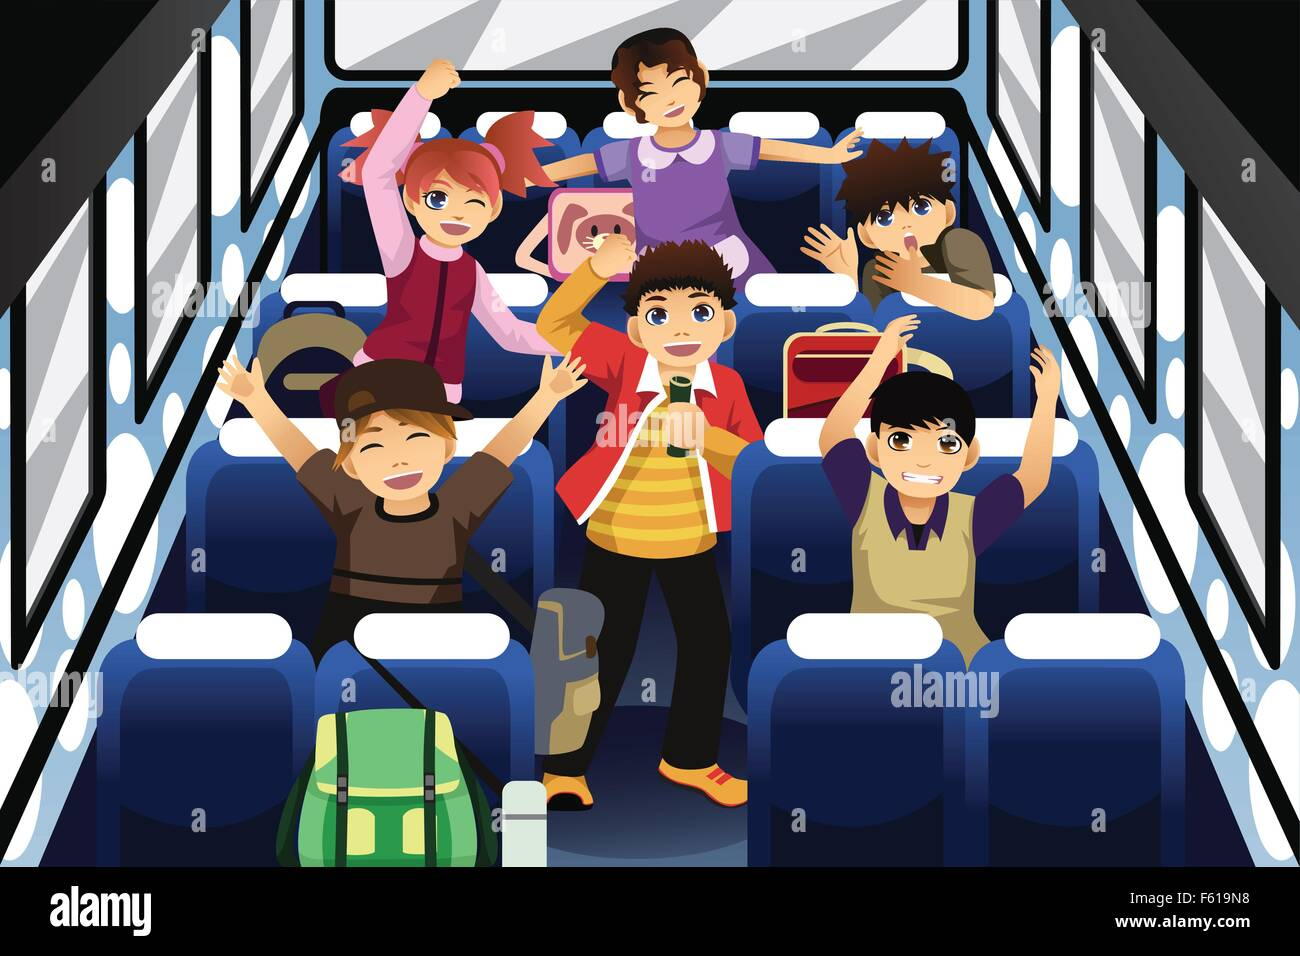 A Vector Illustration Of School Children Singing And Dancing